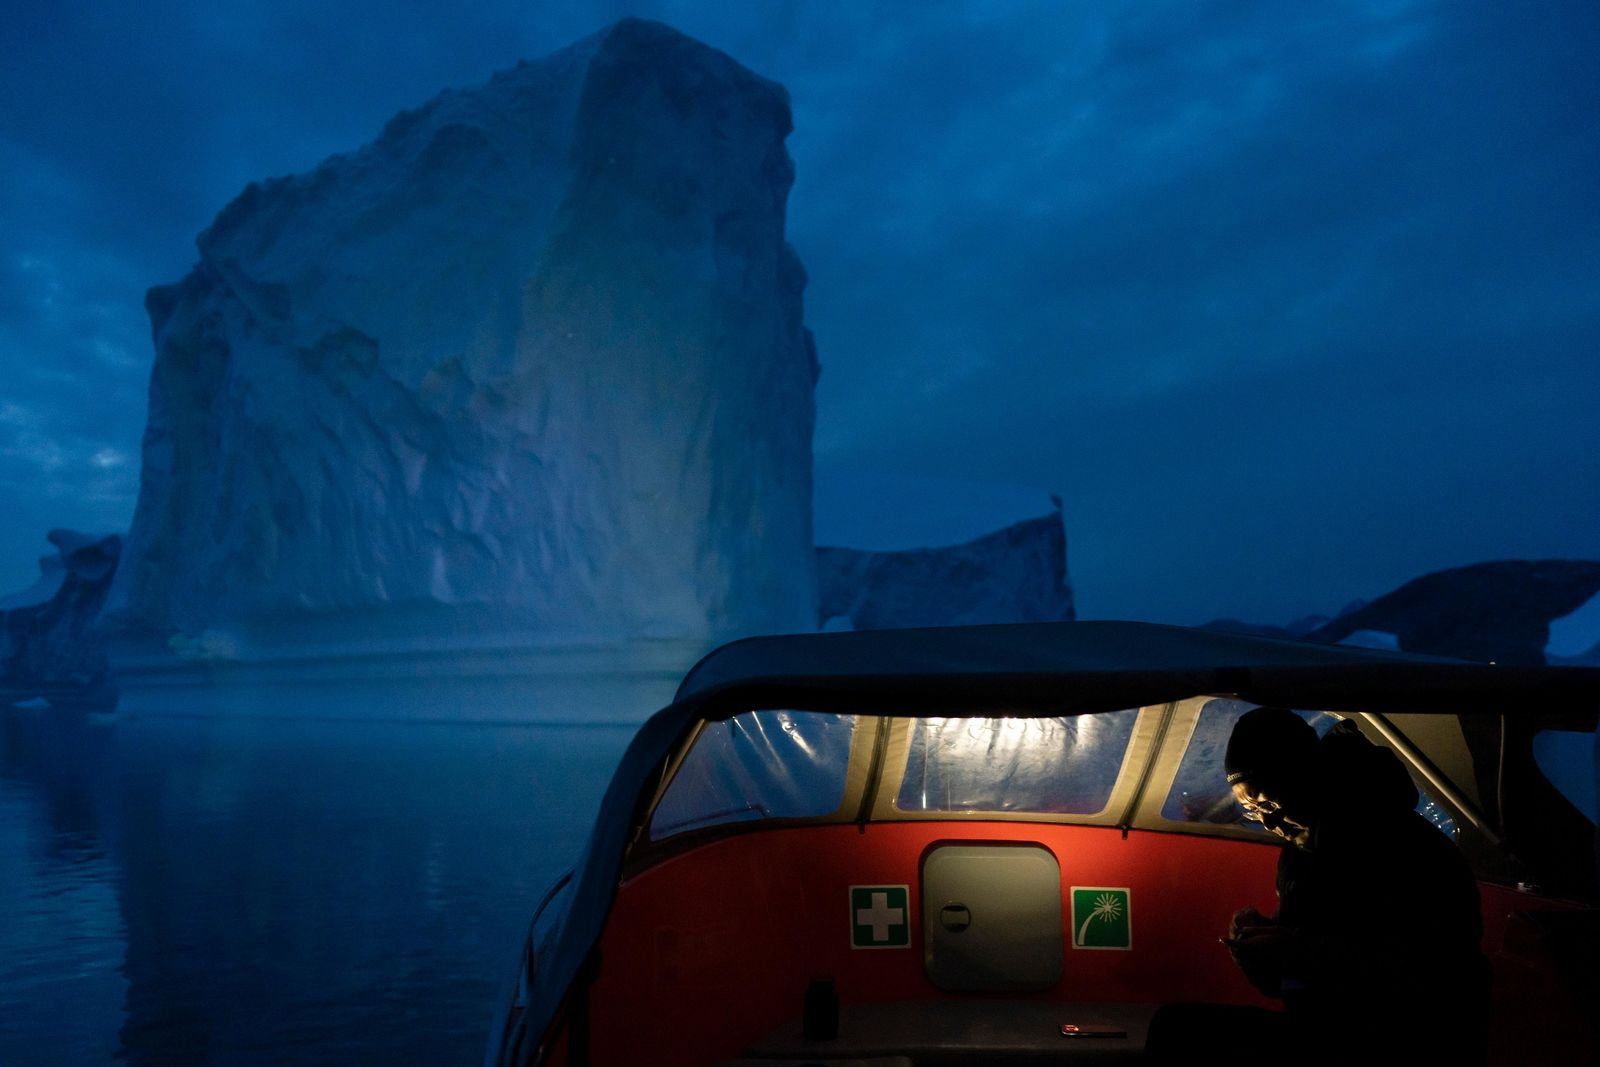 In this Aug. 15, 2019, photo, a boat navigates at night next to a large iceberg in eastern Greenland. (AP Photo/Felipe Dana)